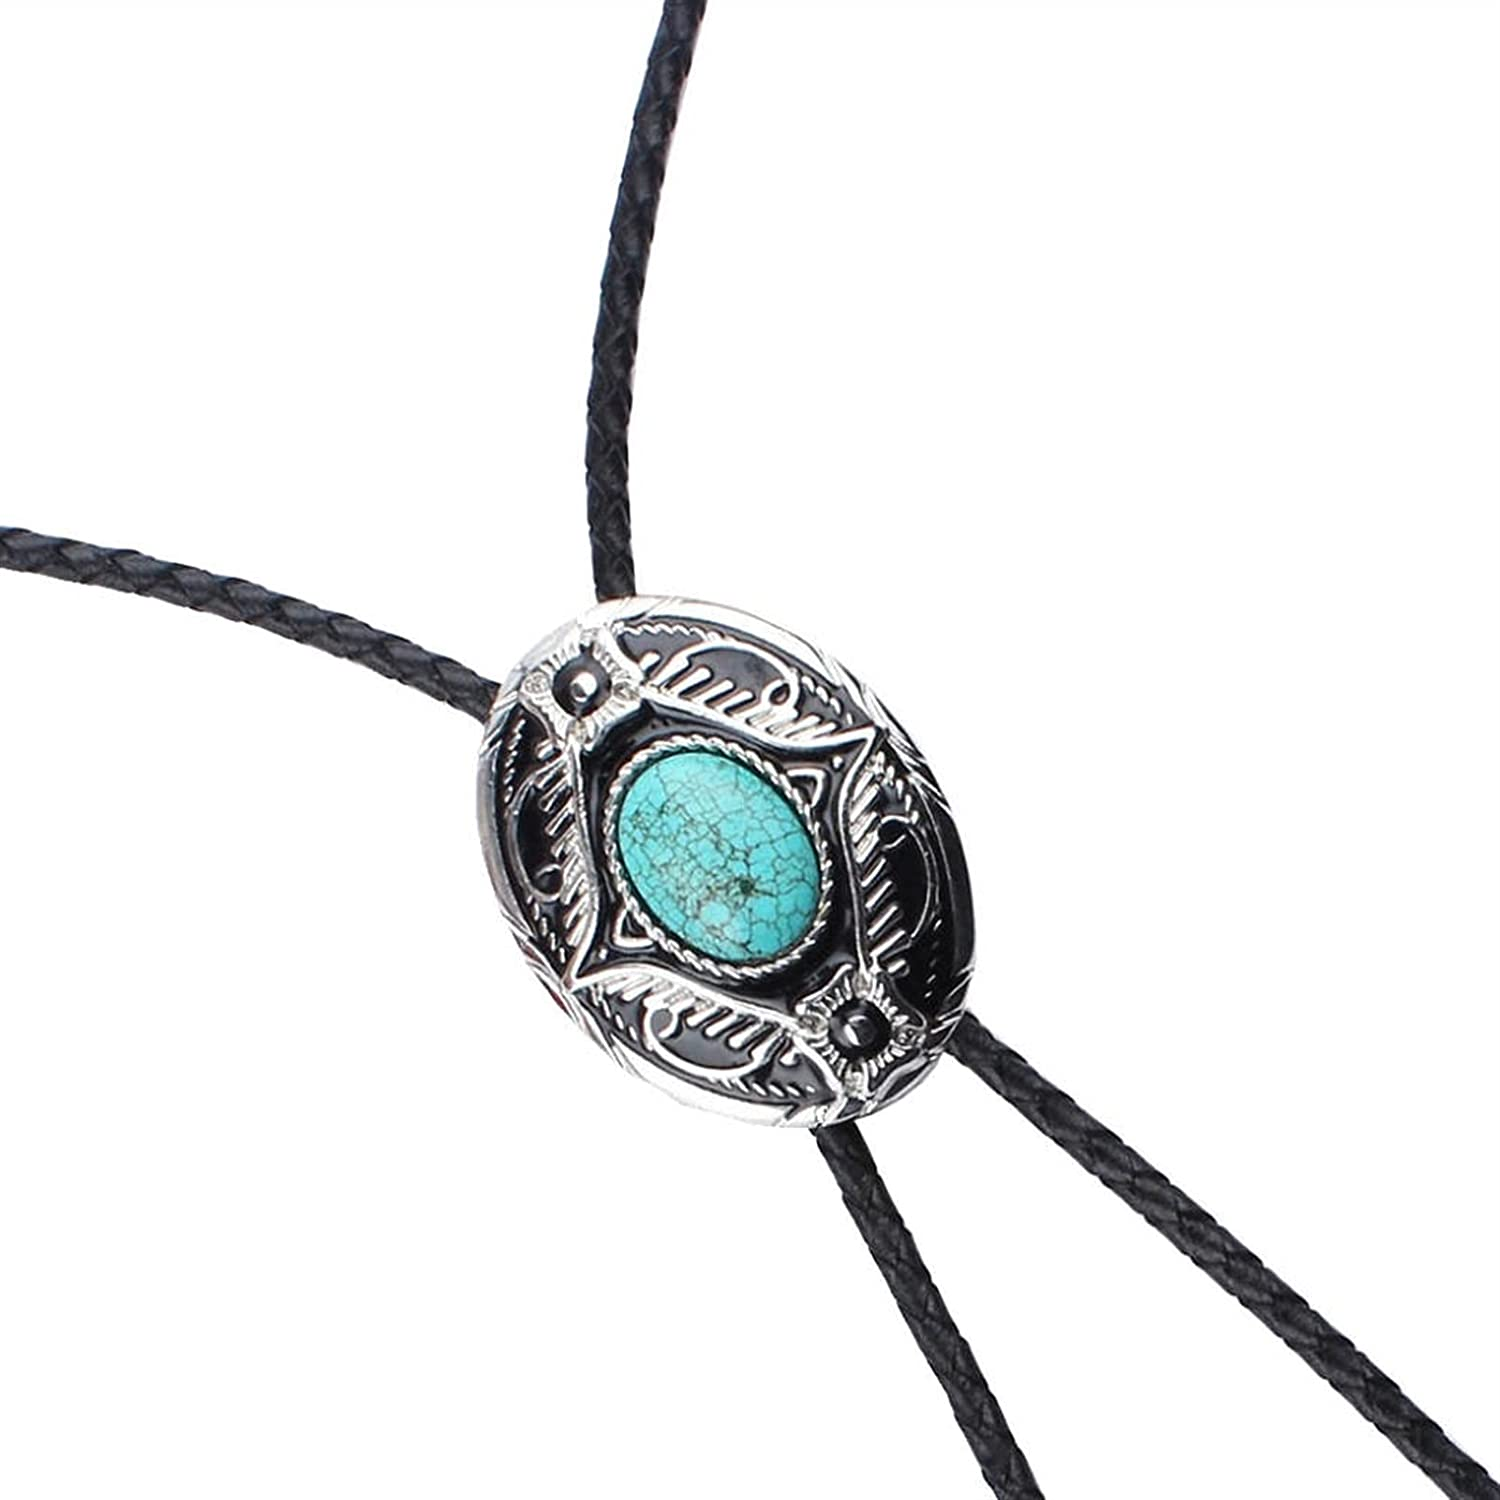 YPYSD Bolo Ties Fashionable bolotie Exquisite Light Blue Turquoise Enamel Western Tie Bolo Leather Tie Ties